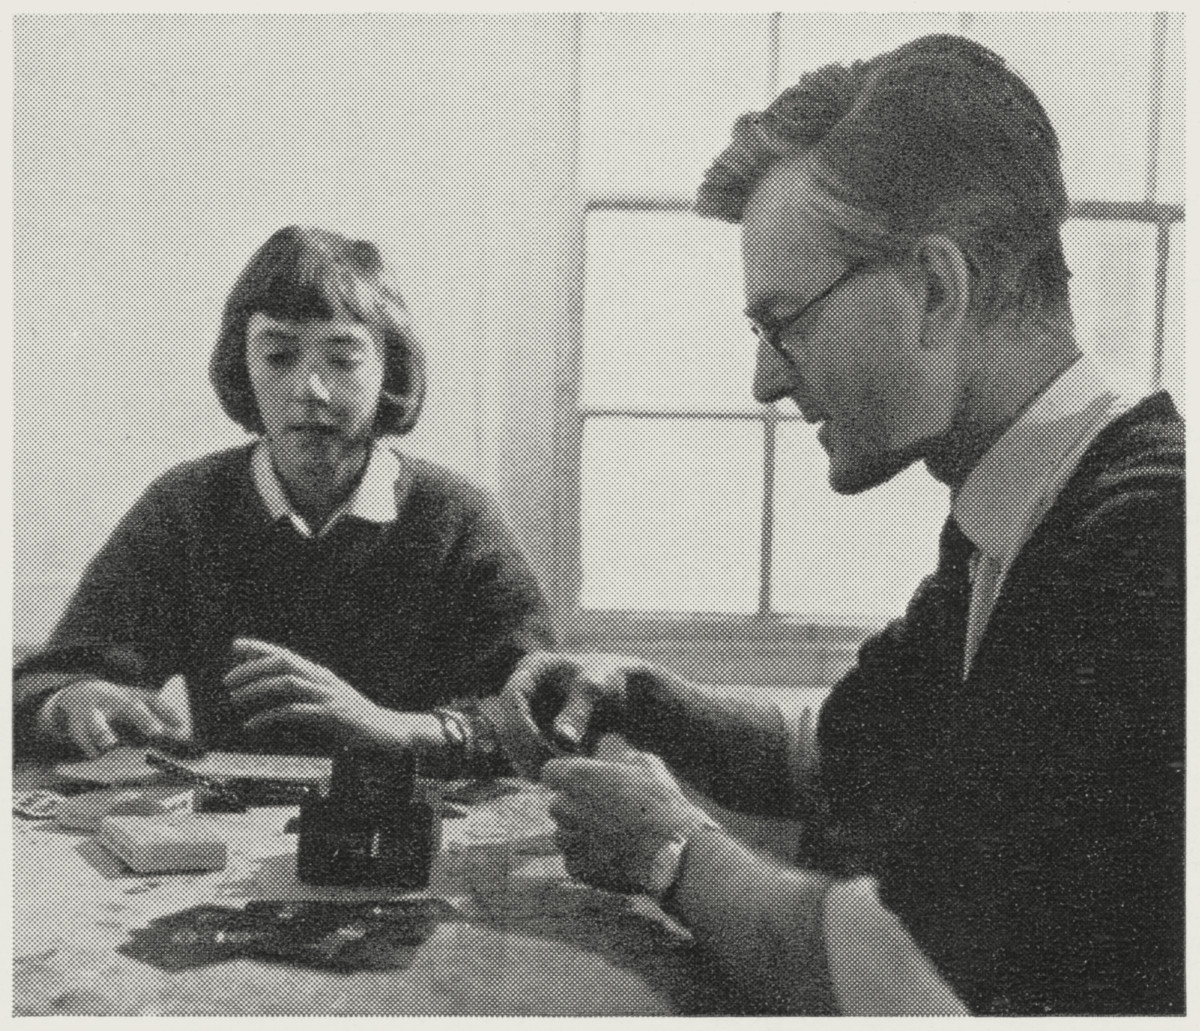 Jock Kinneir and Margaret Calvert playing cards at a table.